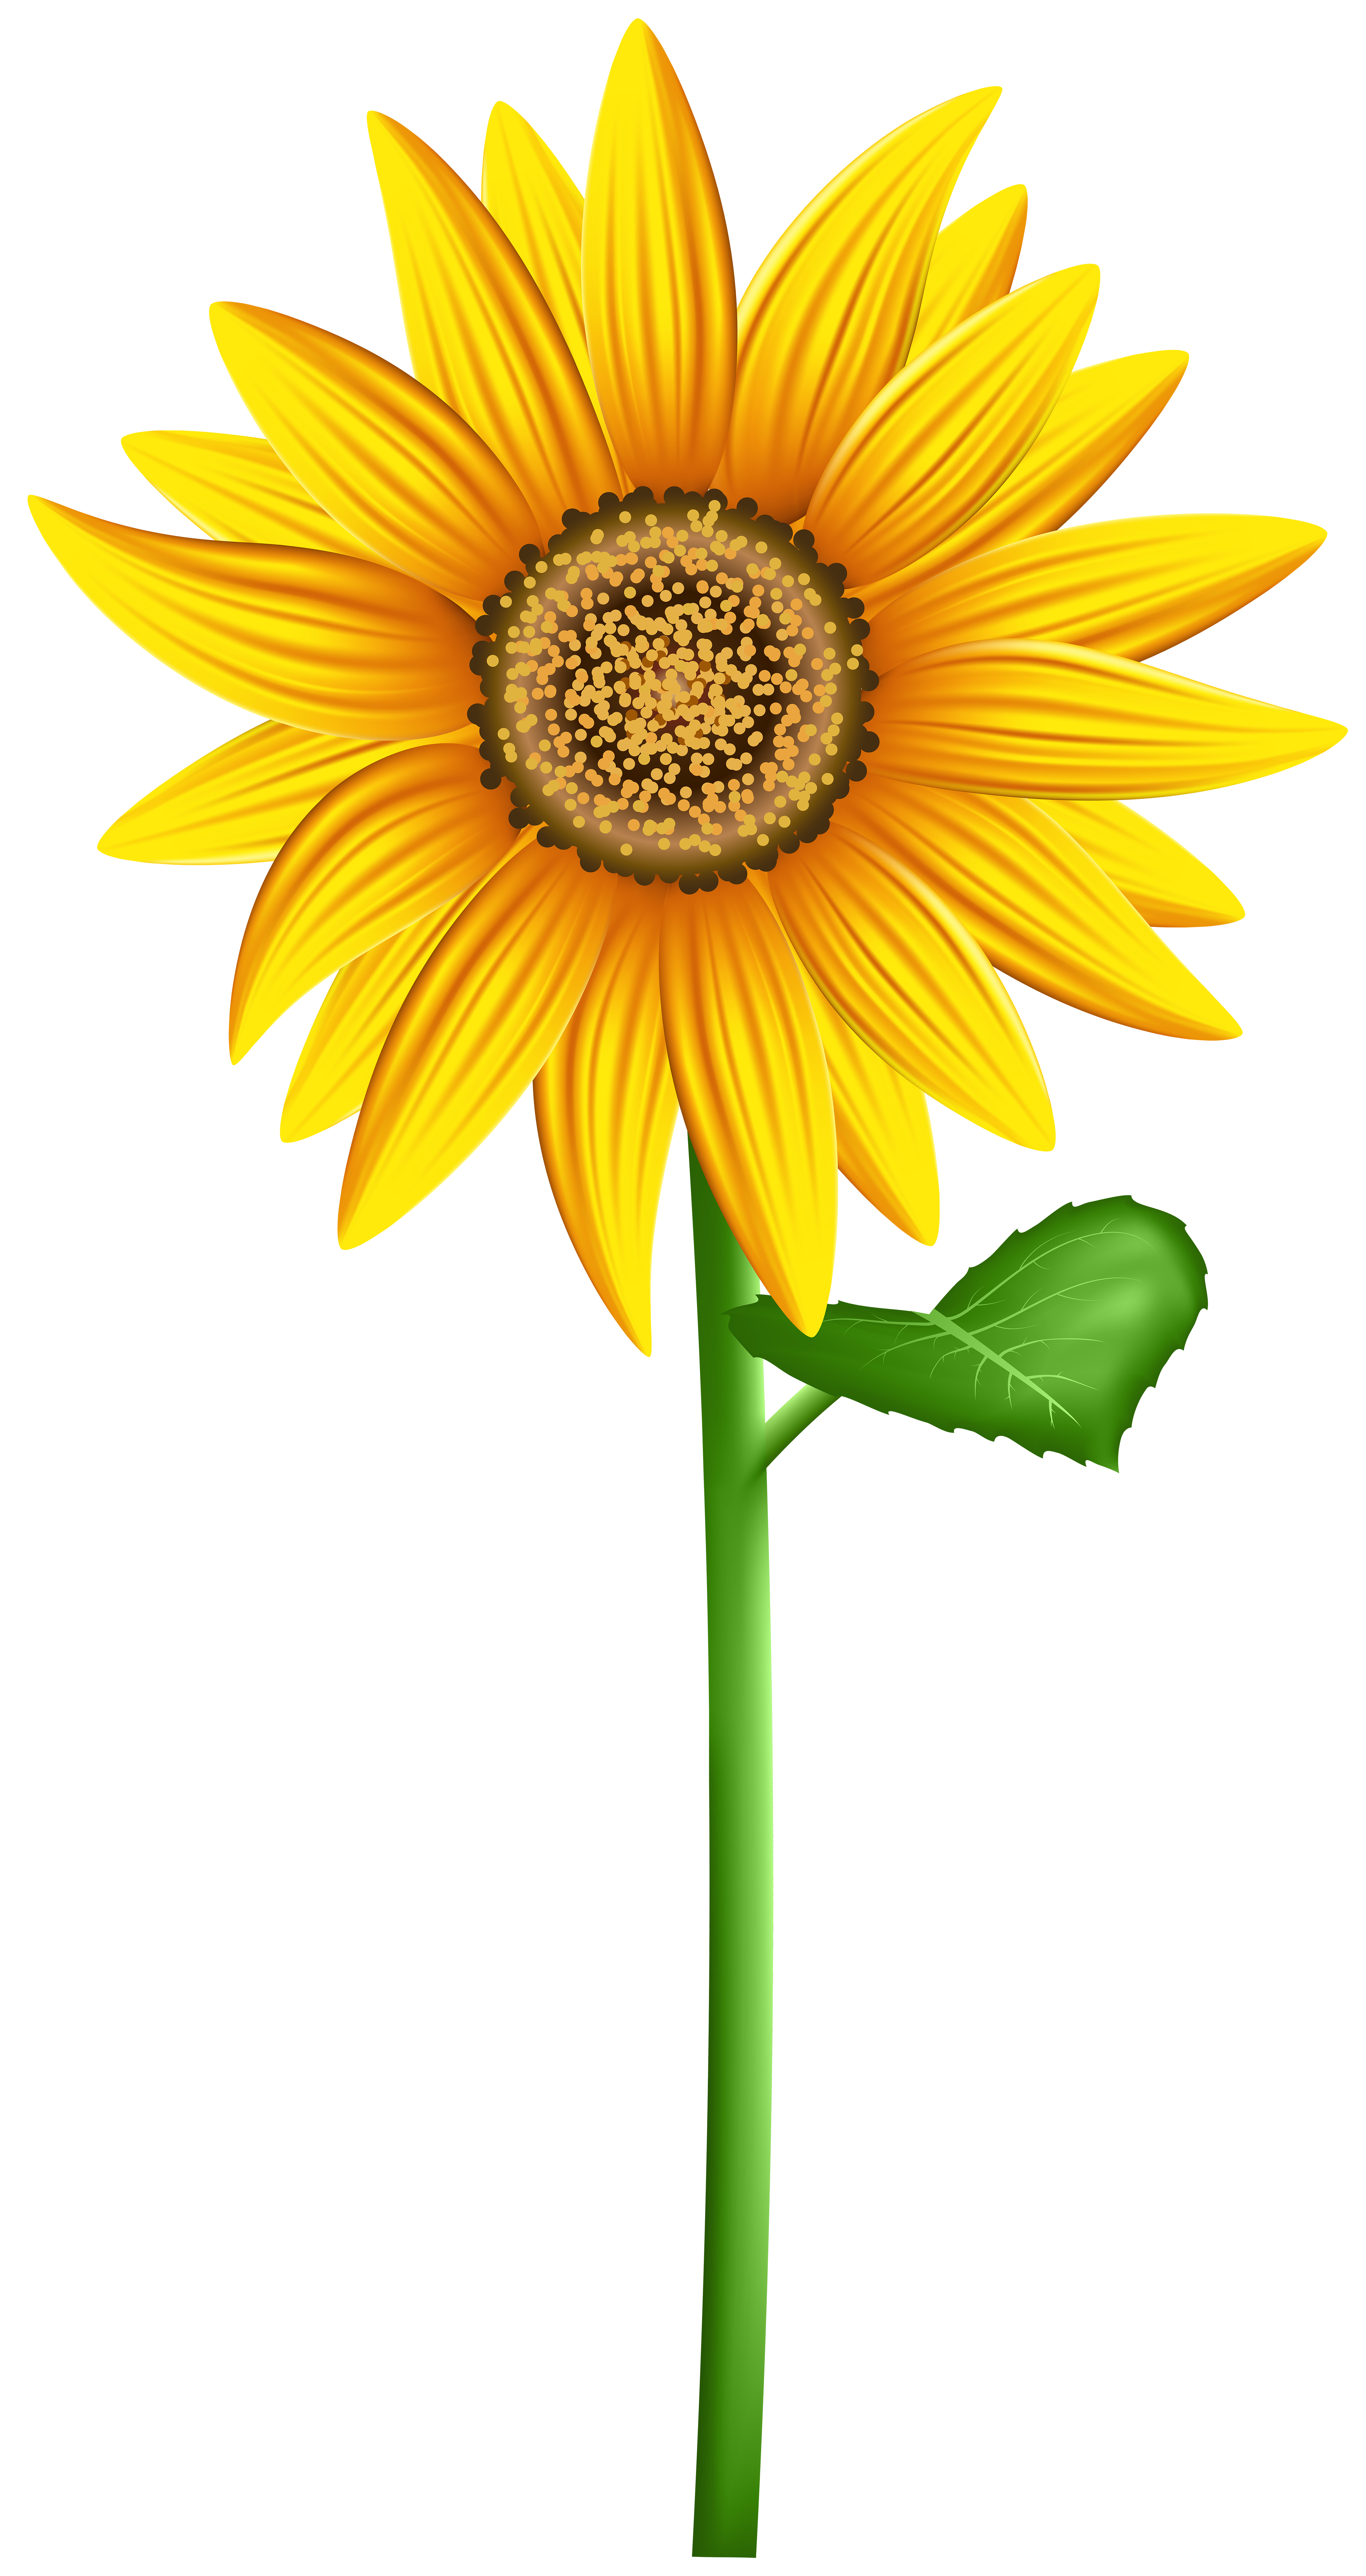 Fall Sunflower Png - Sunflower PNG Transparent Clip Art Image | Gallery Yopriceville ...